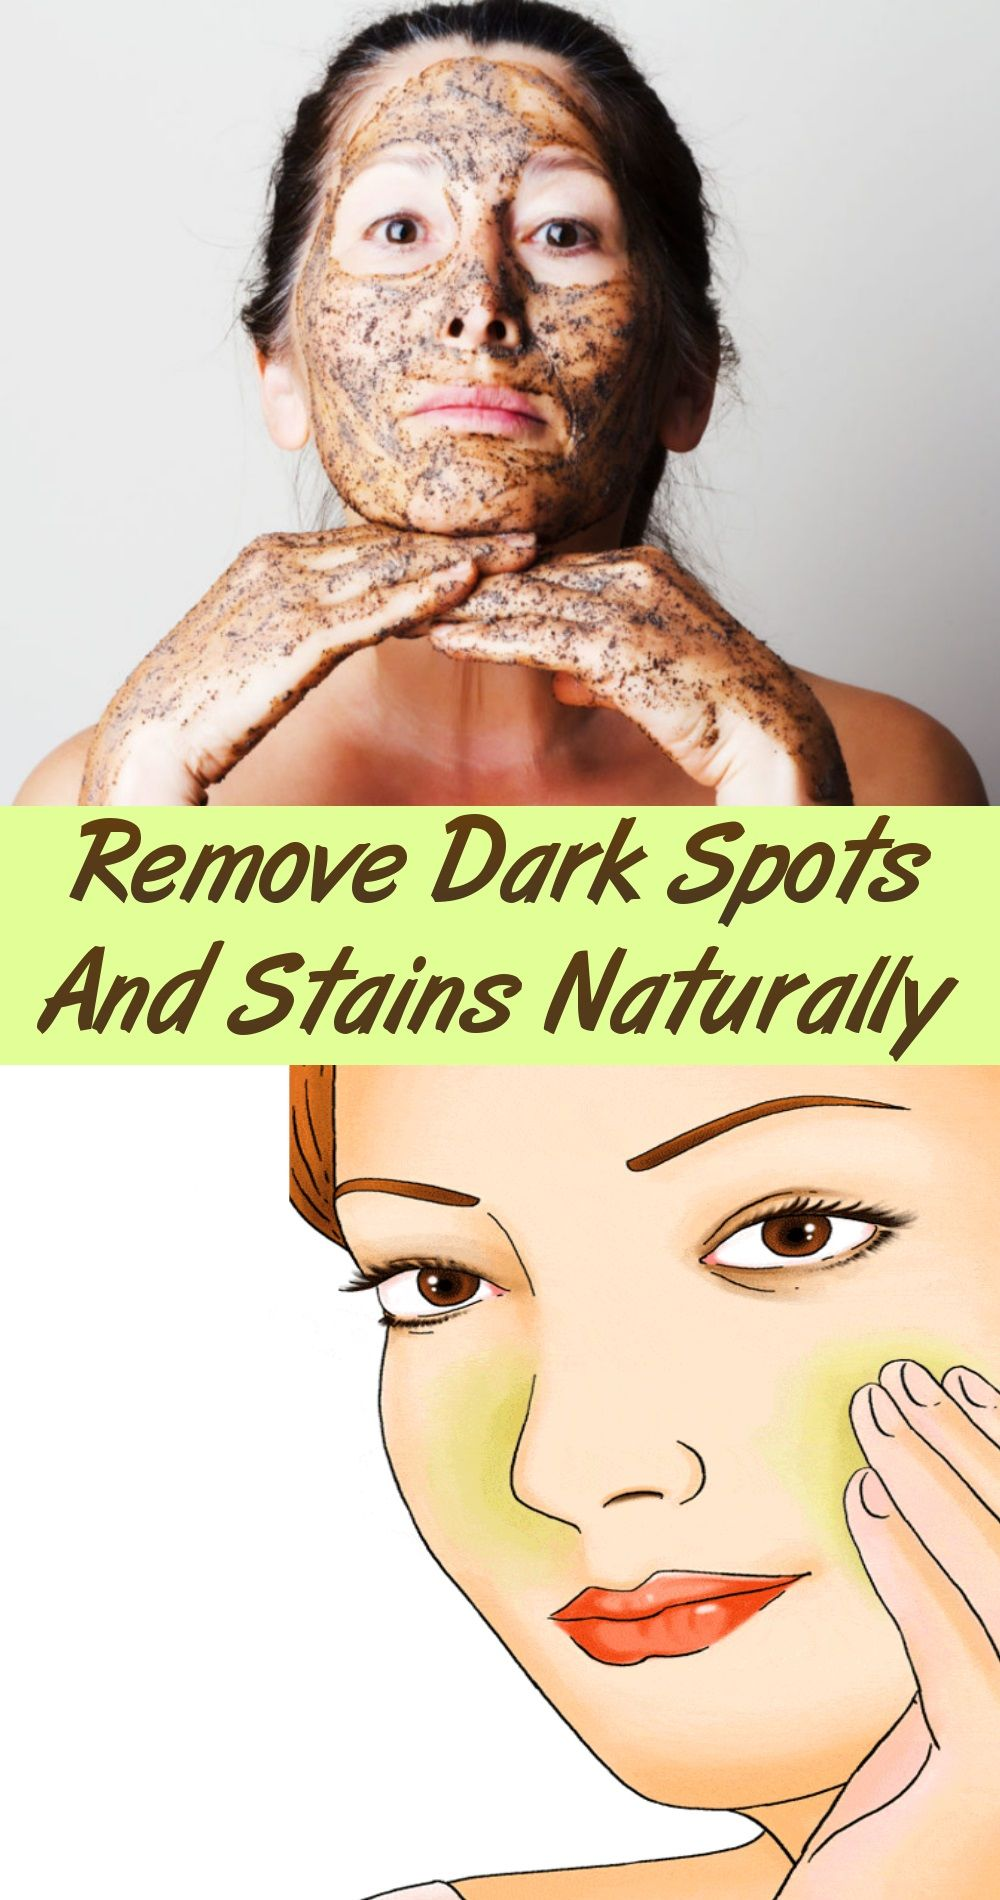 Dark spots on face, moles, dark patches, freckles, and white